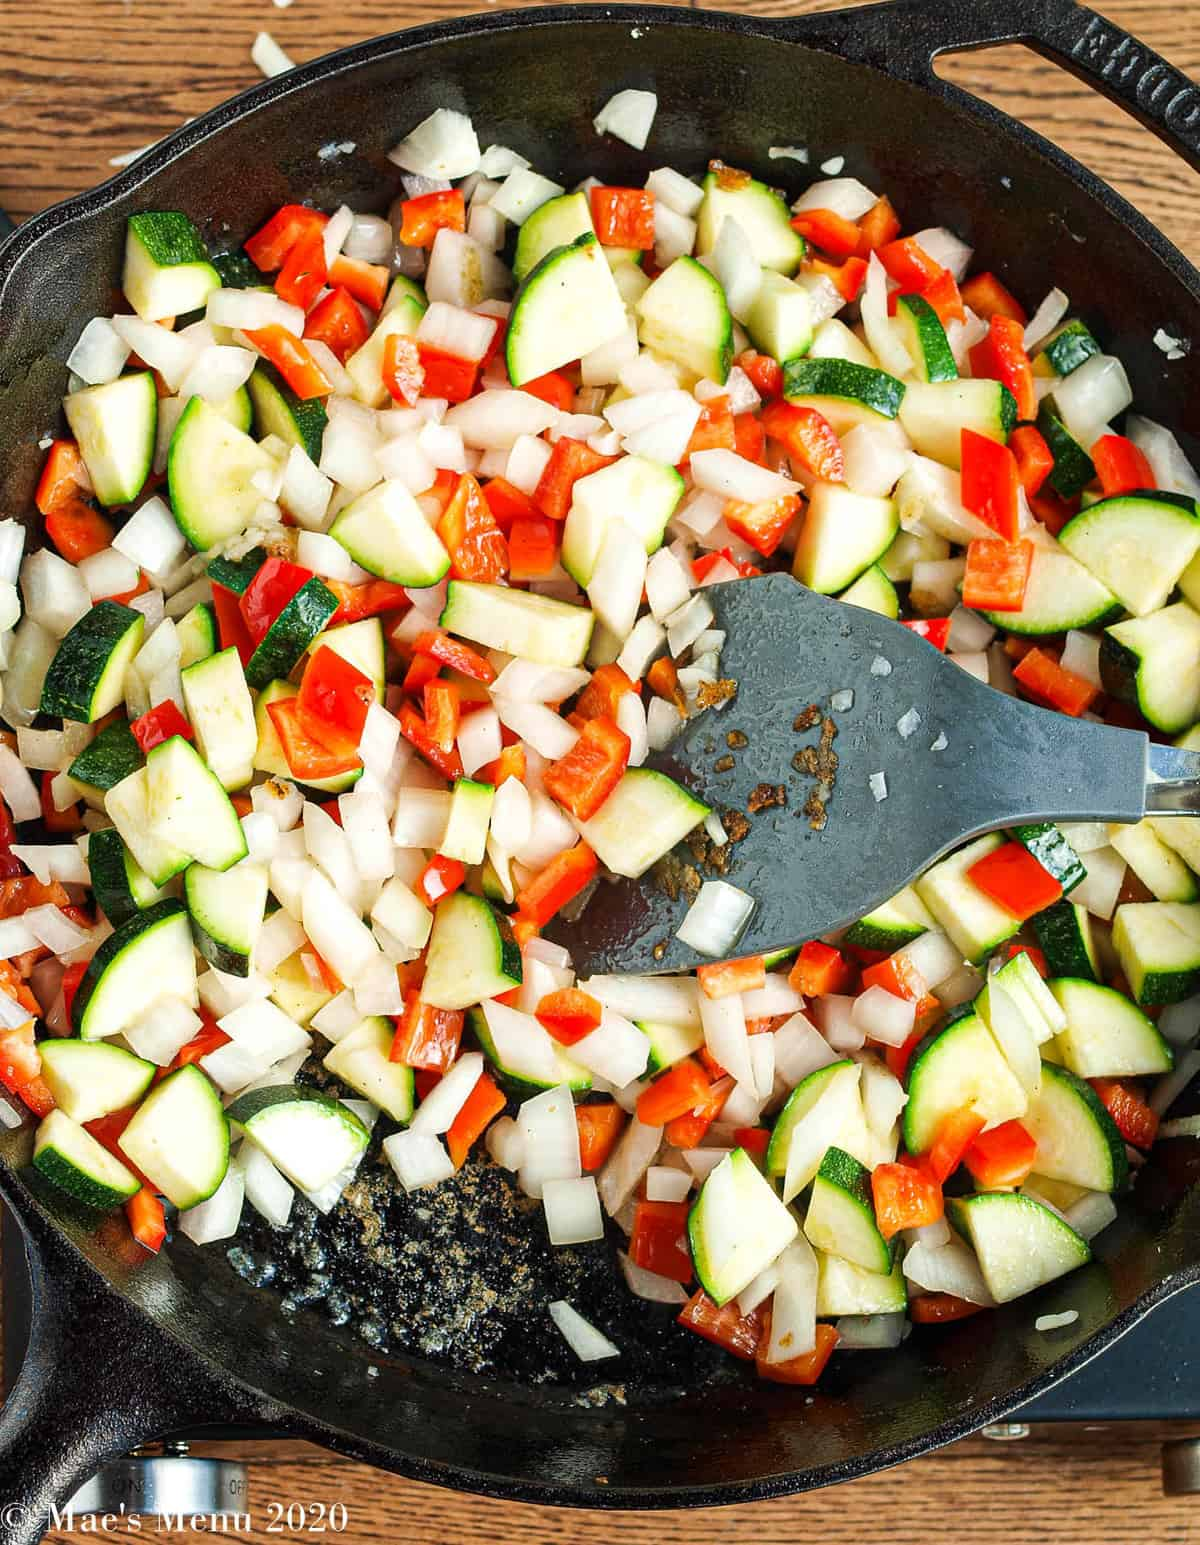 An overhead shot of a cast iron skillet with chopped peppers, onion, and zucchini